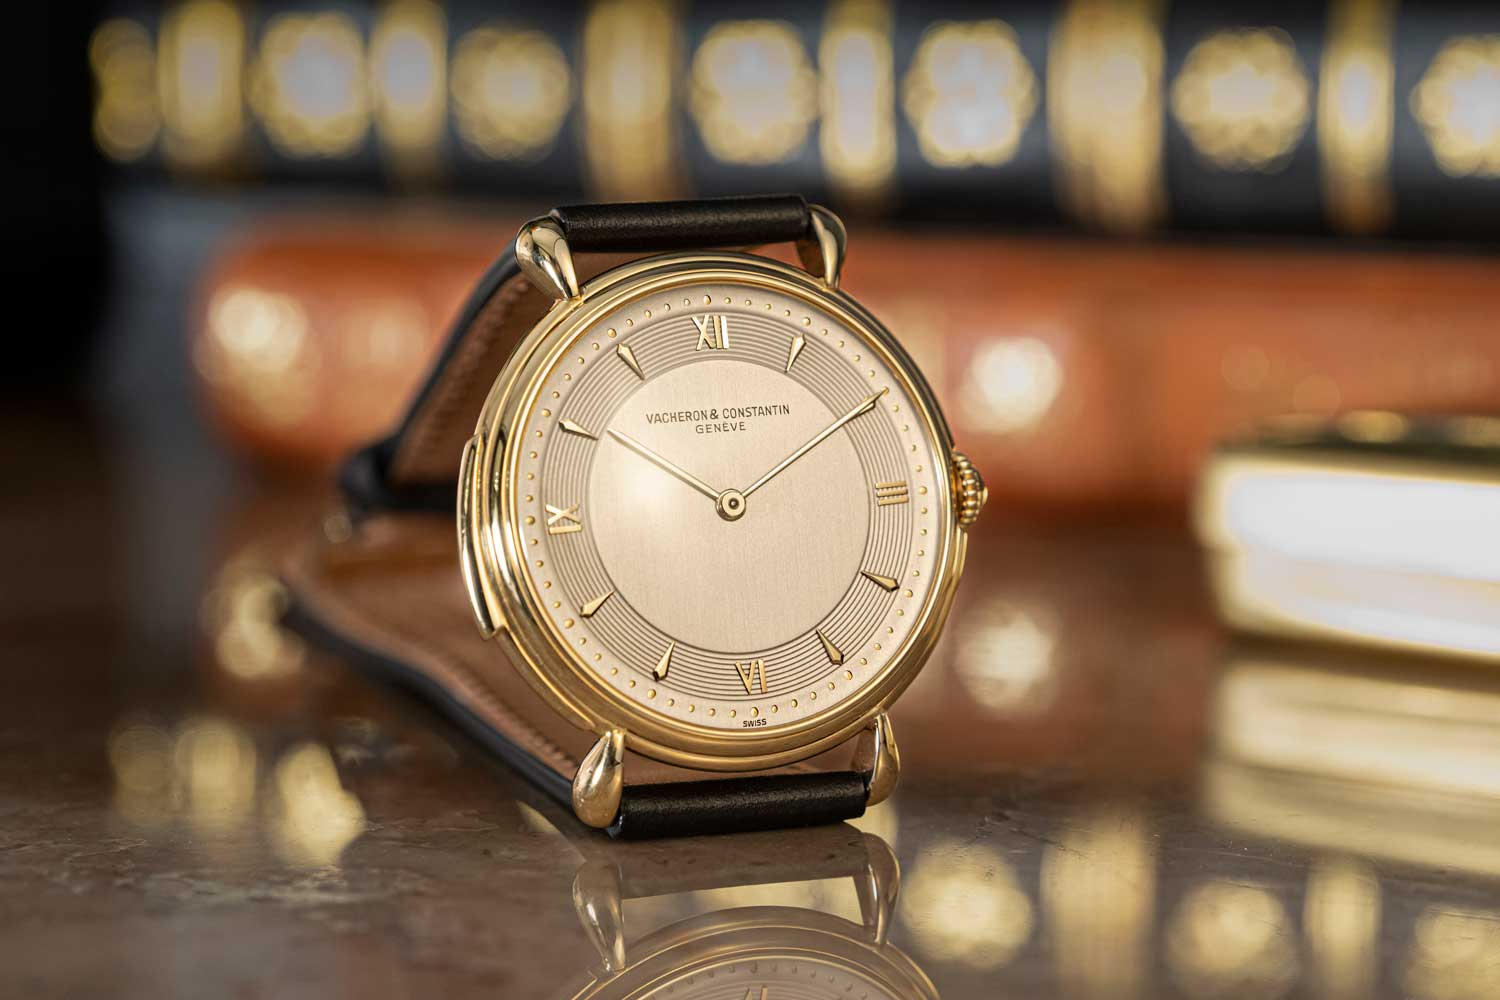 1951: Reference 4261 Minute Repeater with Tear-Drop Lugs; 18K yellow gold minute-repeater gentleman's wristwatch, tear-drop lugs soldered to the middle; silvered dial, circular guilloché hour-circle, 4/4 Roman numerals and 8 lapidated and pointed indexes, external pearled minute-circle; yellow gold pointed baton hands (©Revolution)